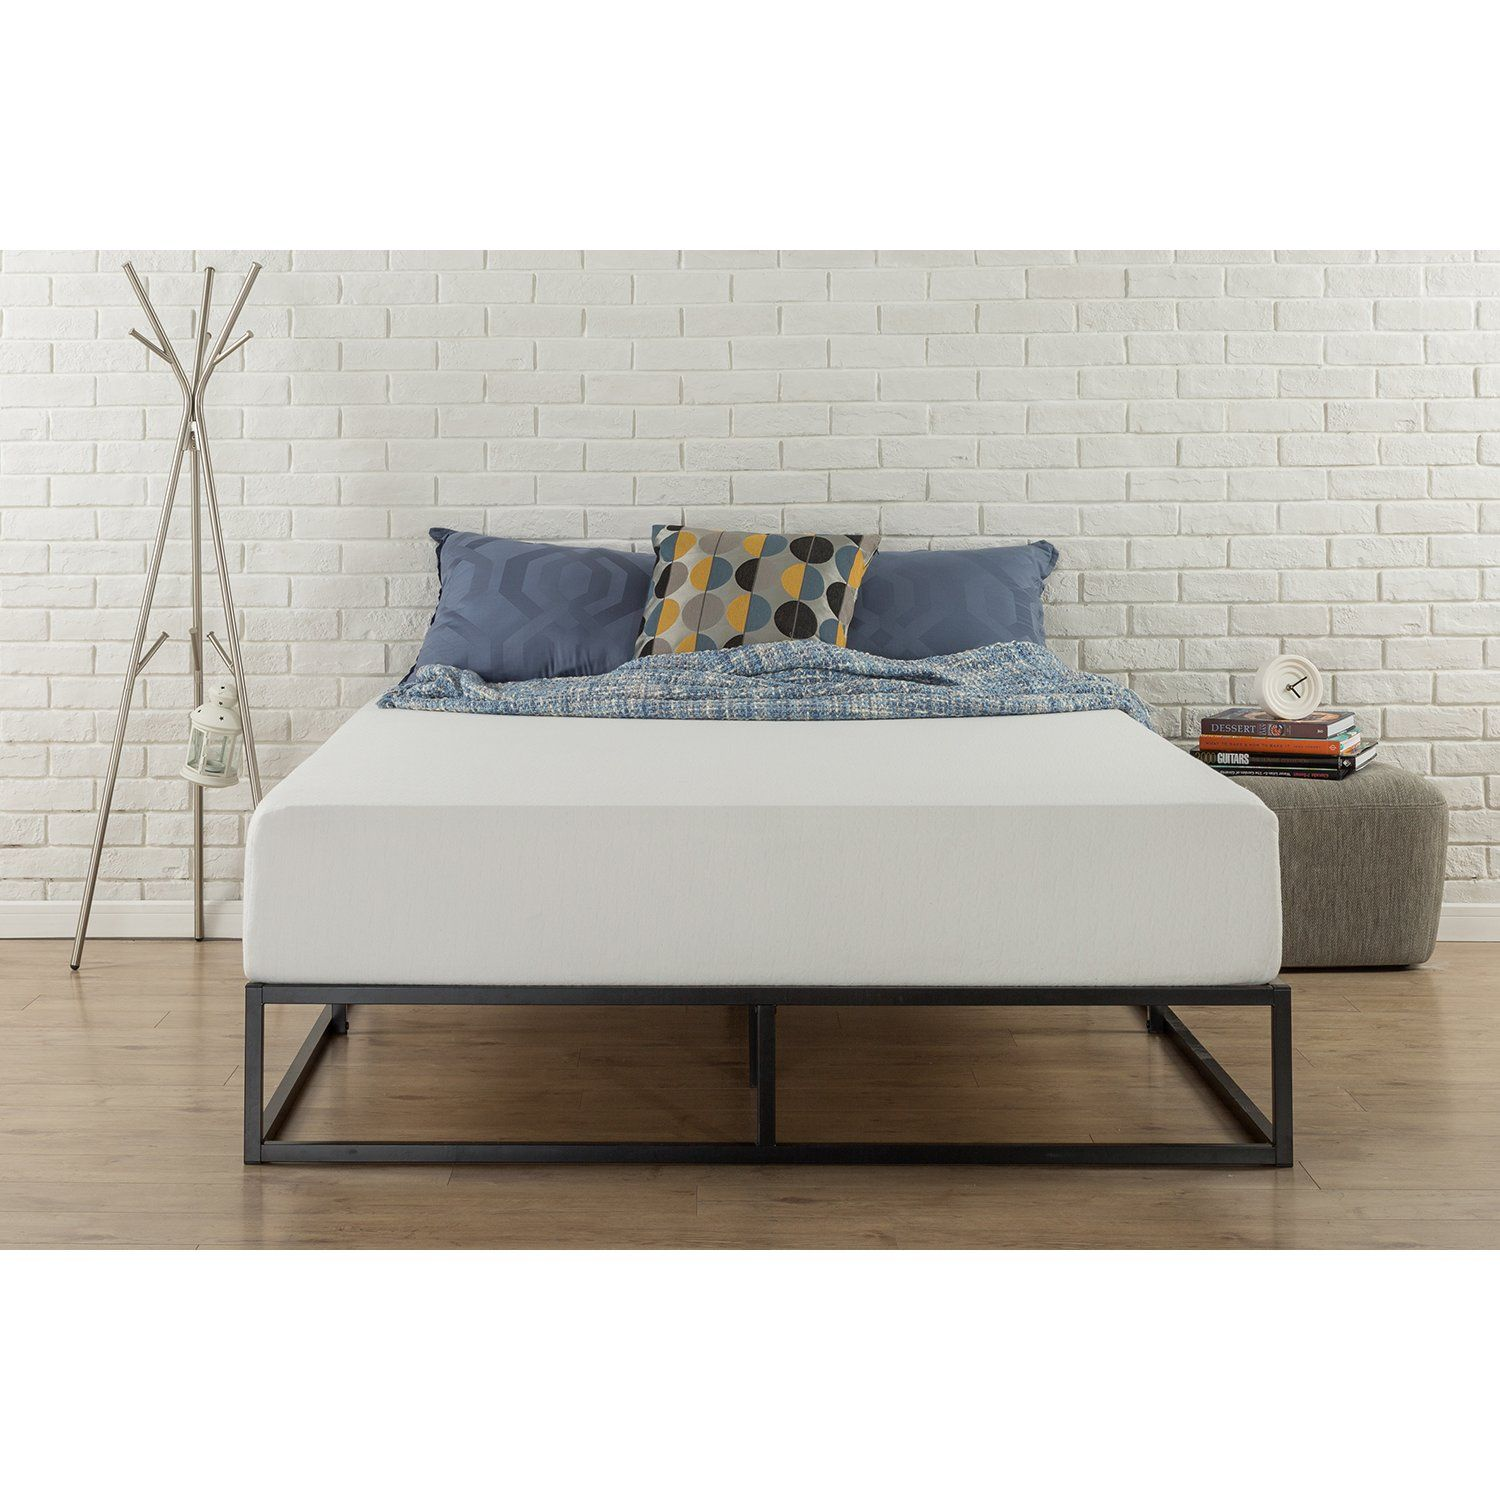 Varick Gallery Reg Fetter Platform Bed With Images King Bed